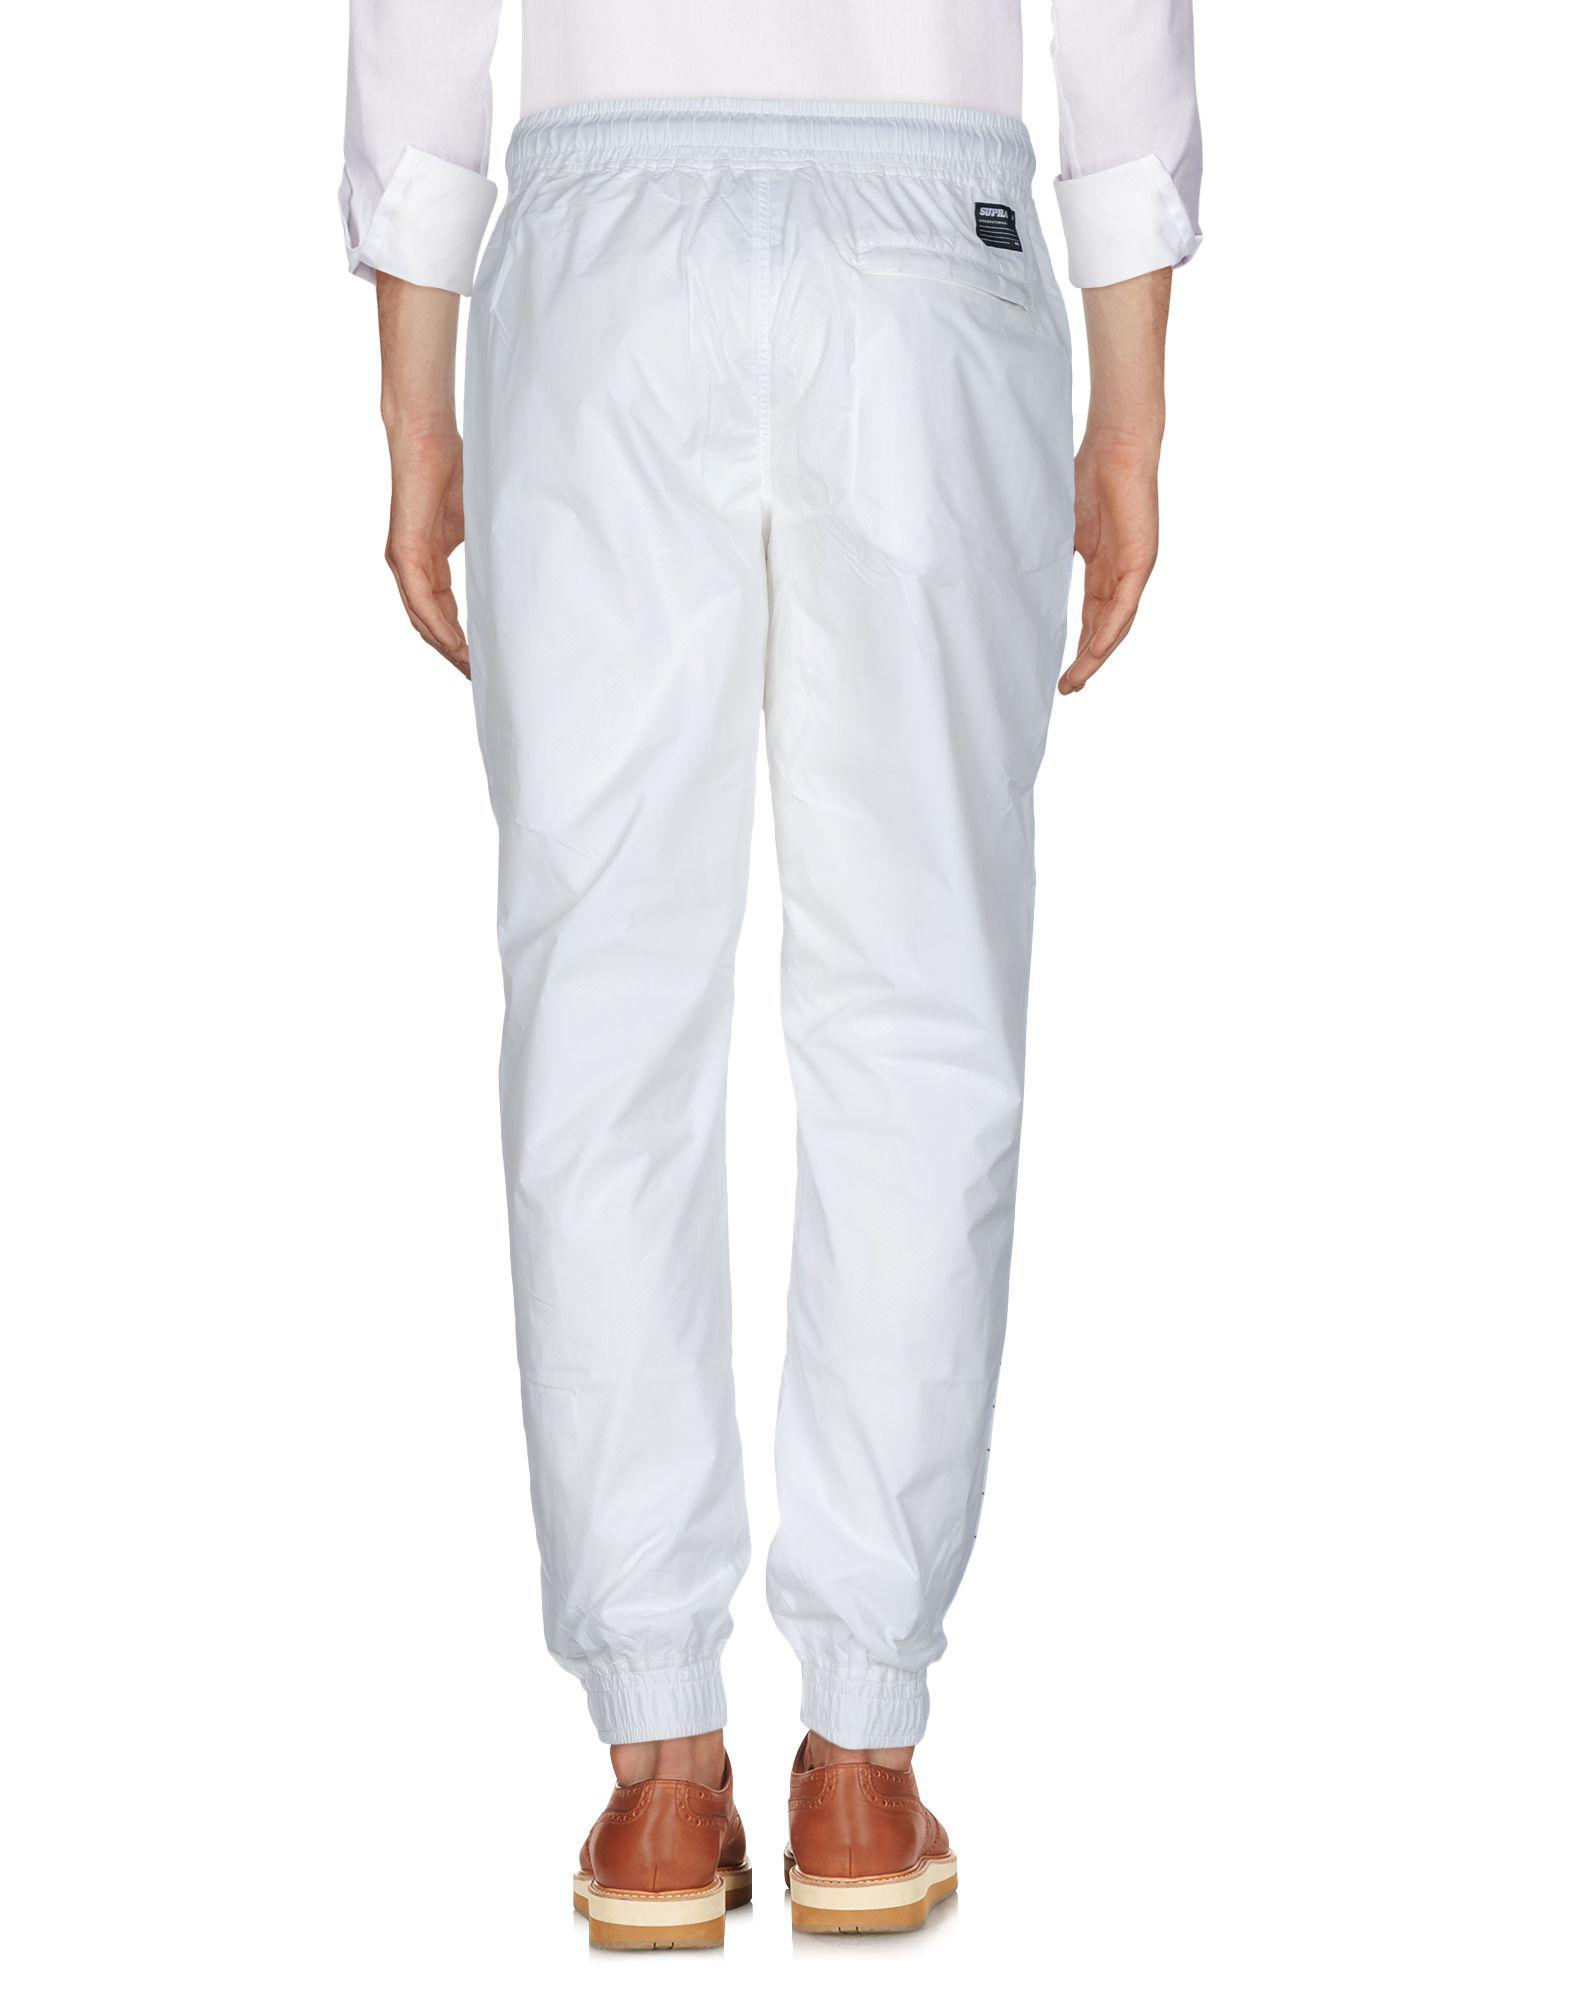 Supra Synthetic Casual Pants in Ivory (White) for Men